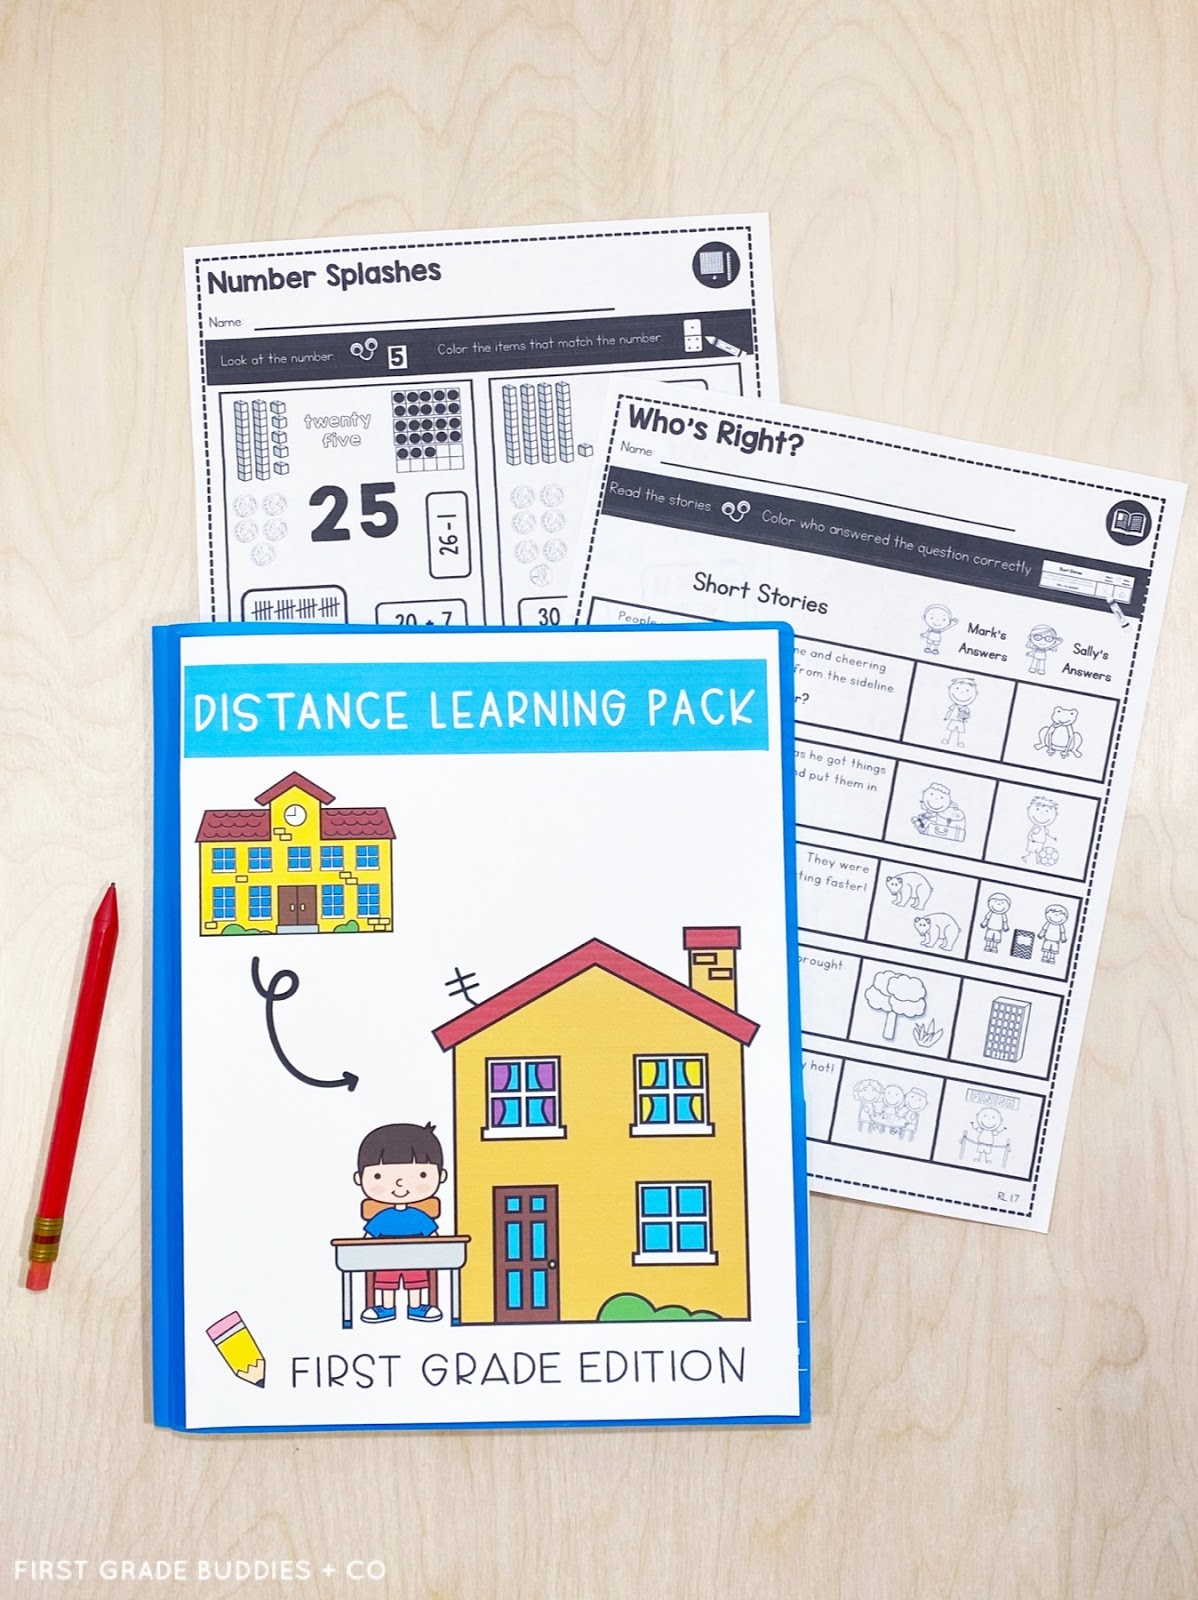 hight resolution of Resources for At-Home and Distance Learning   First Grade Buddies